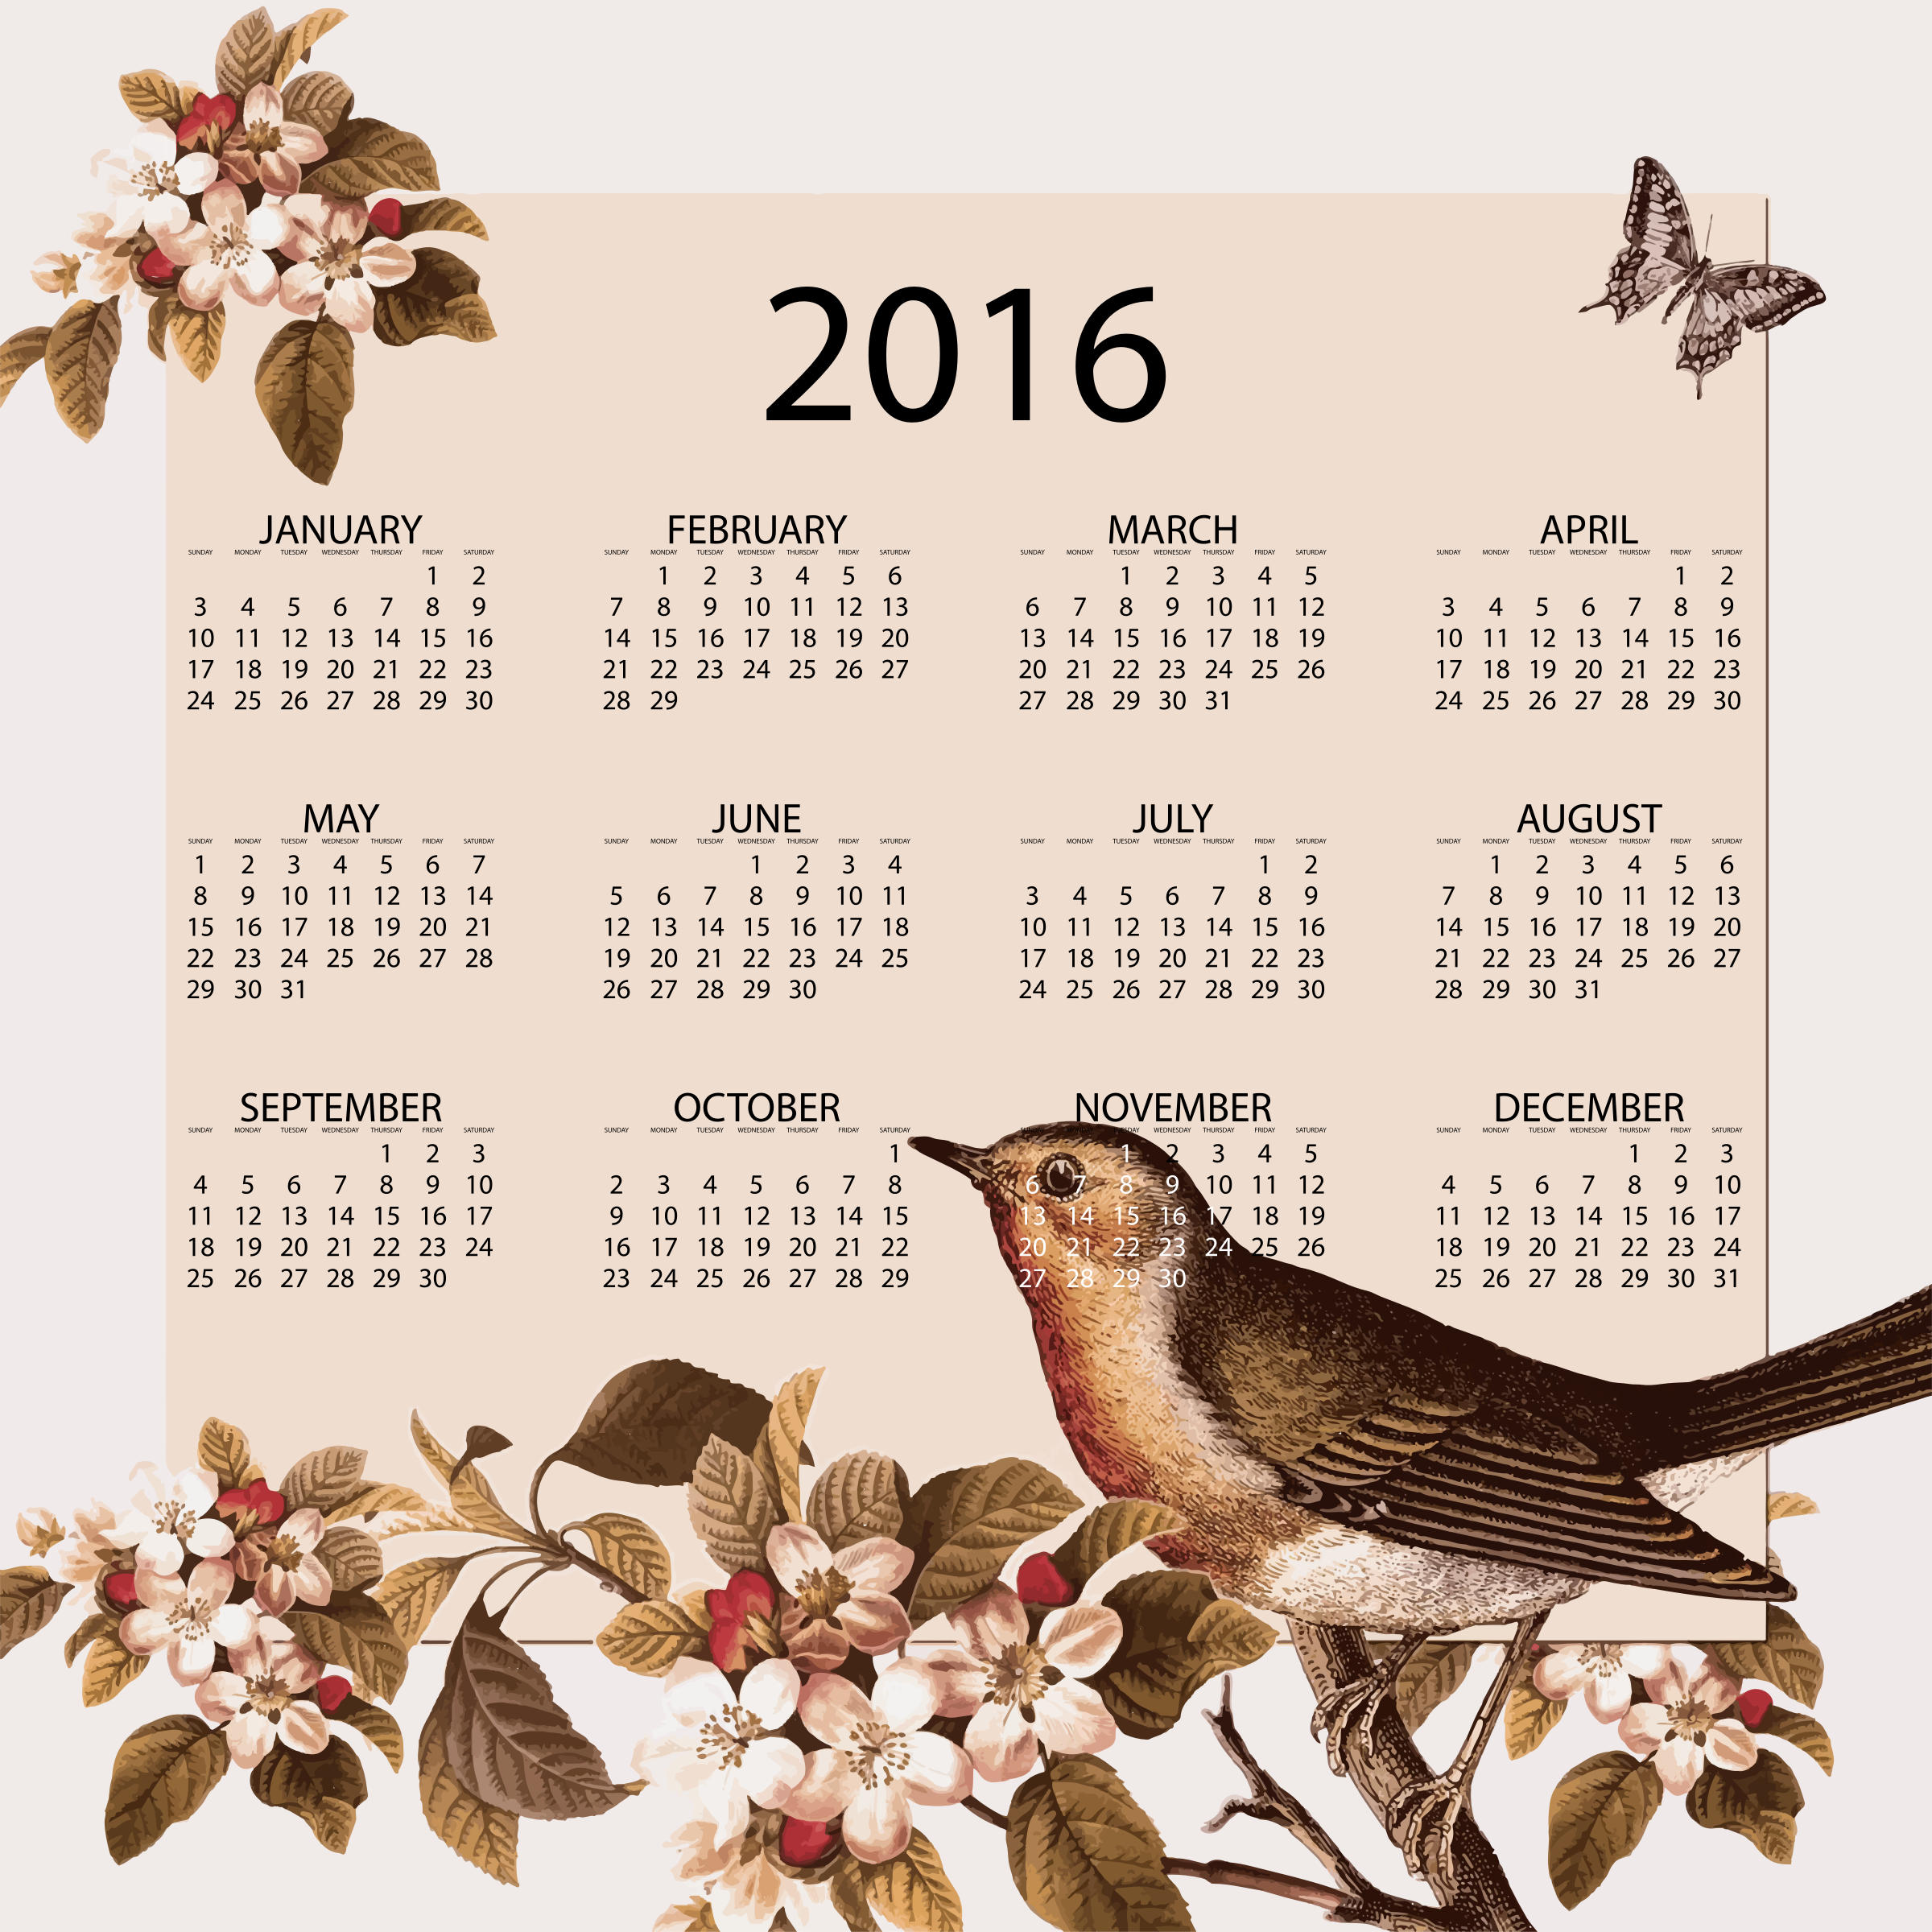 Vintage Bird And Floral 2016 Calendar by GDJ